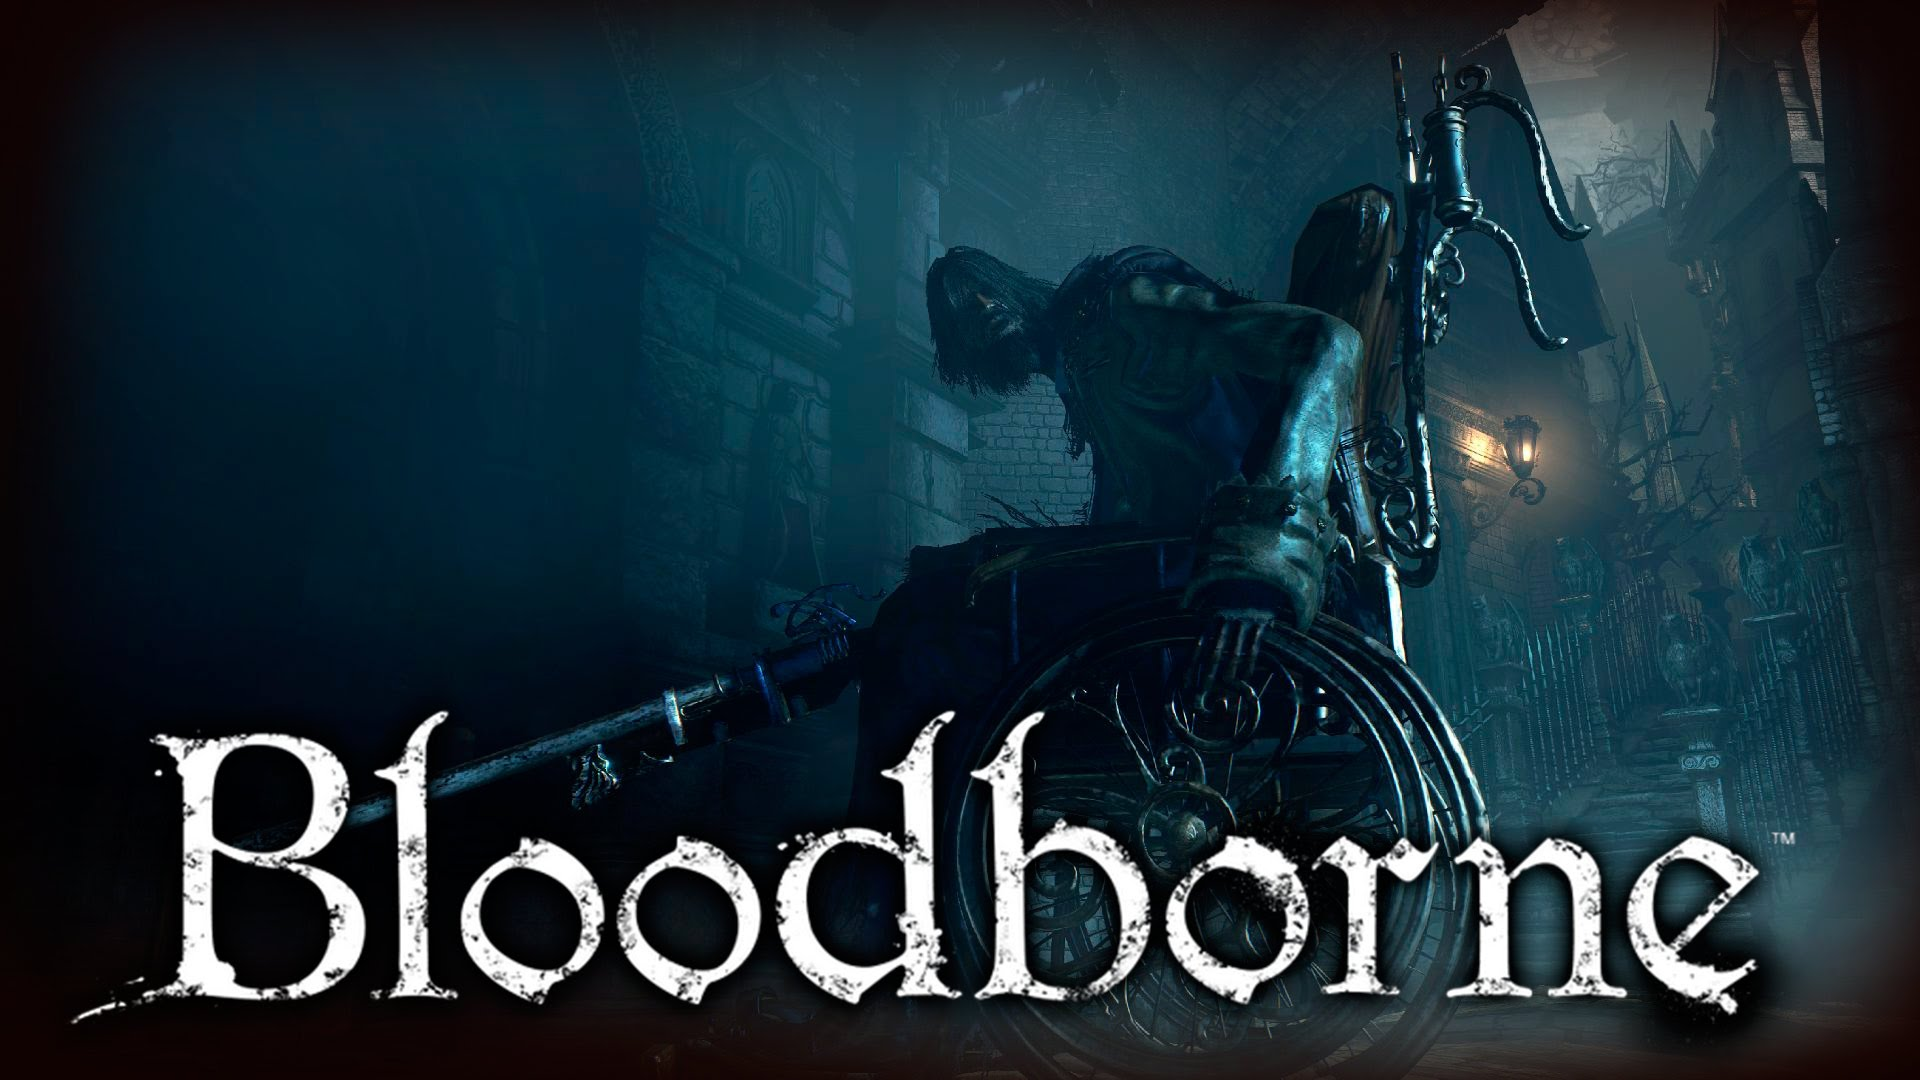 Bloodborne wallpapers pictures images - Bloodborne download ...